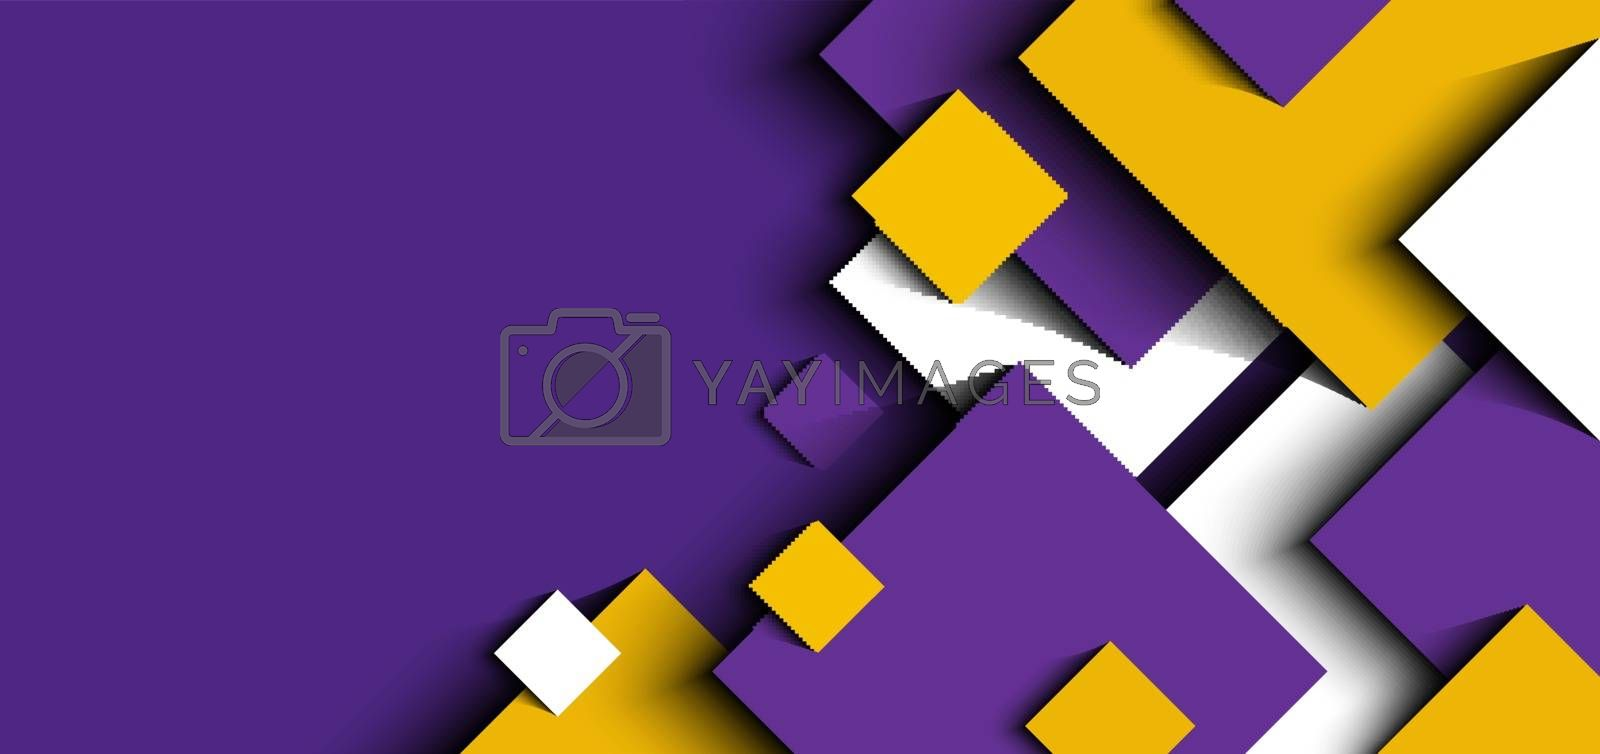 Abstract background 3D purple, yellow, white geometric squares shape design paper cut style. Vector illustration